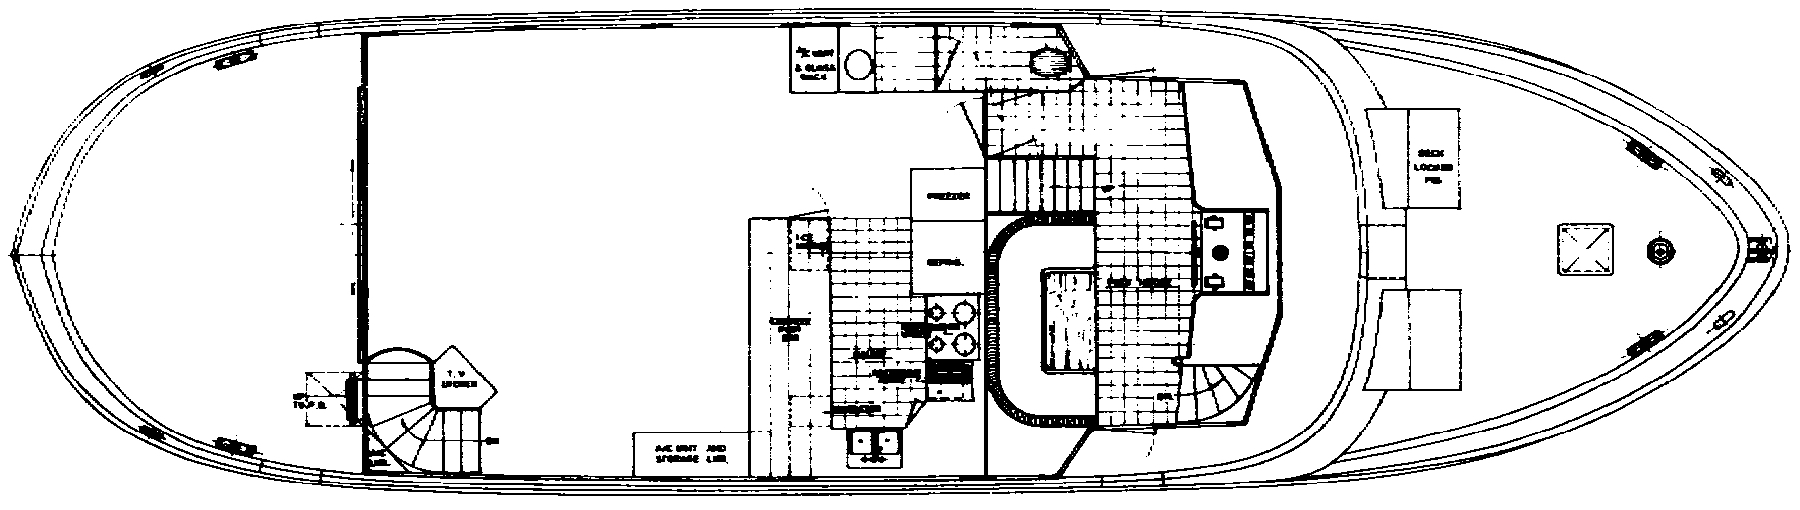 66 Long Range Cruiser Floor Plan 2